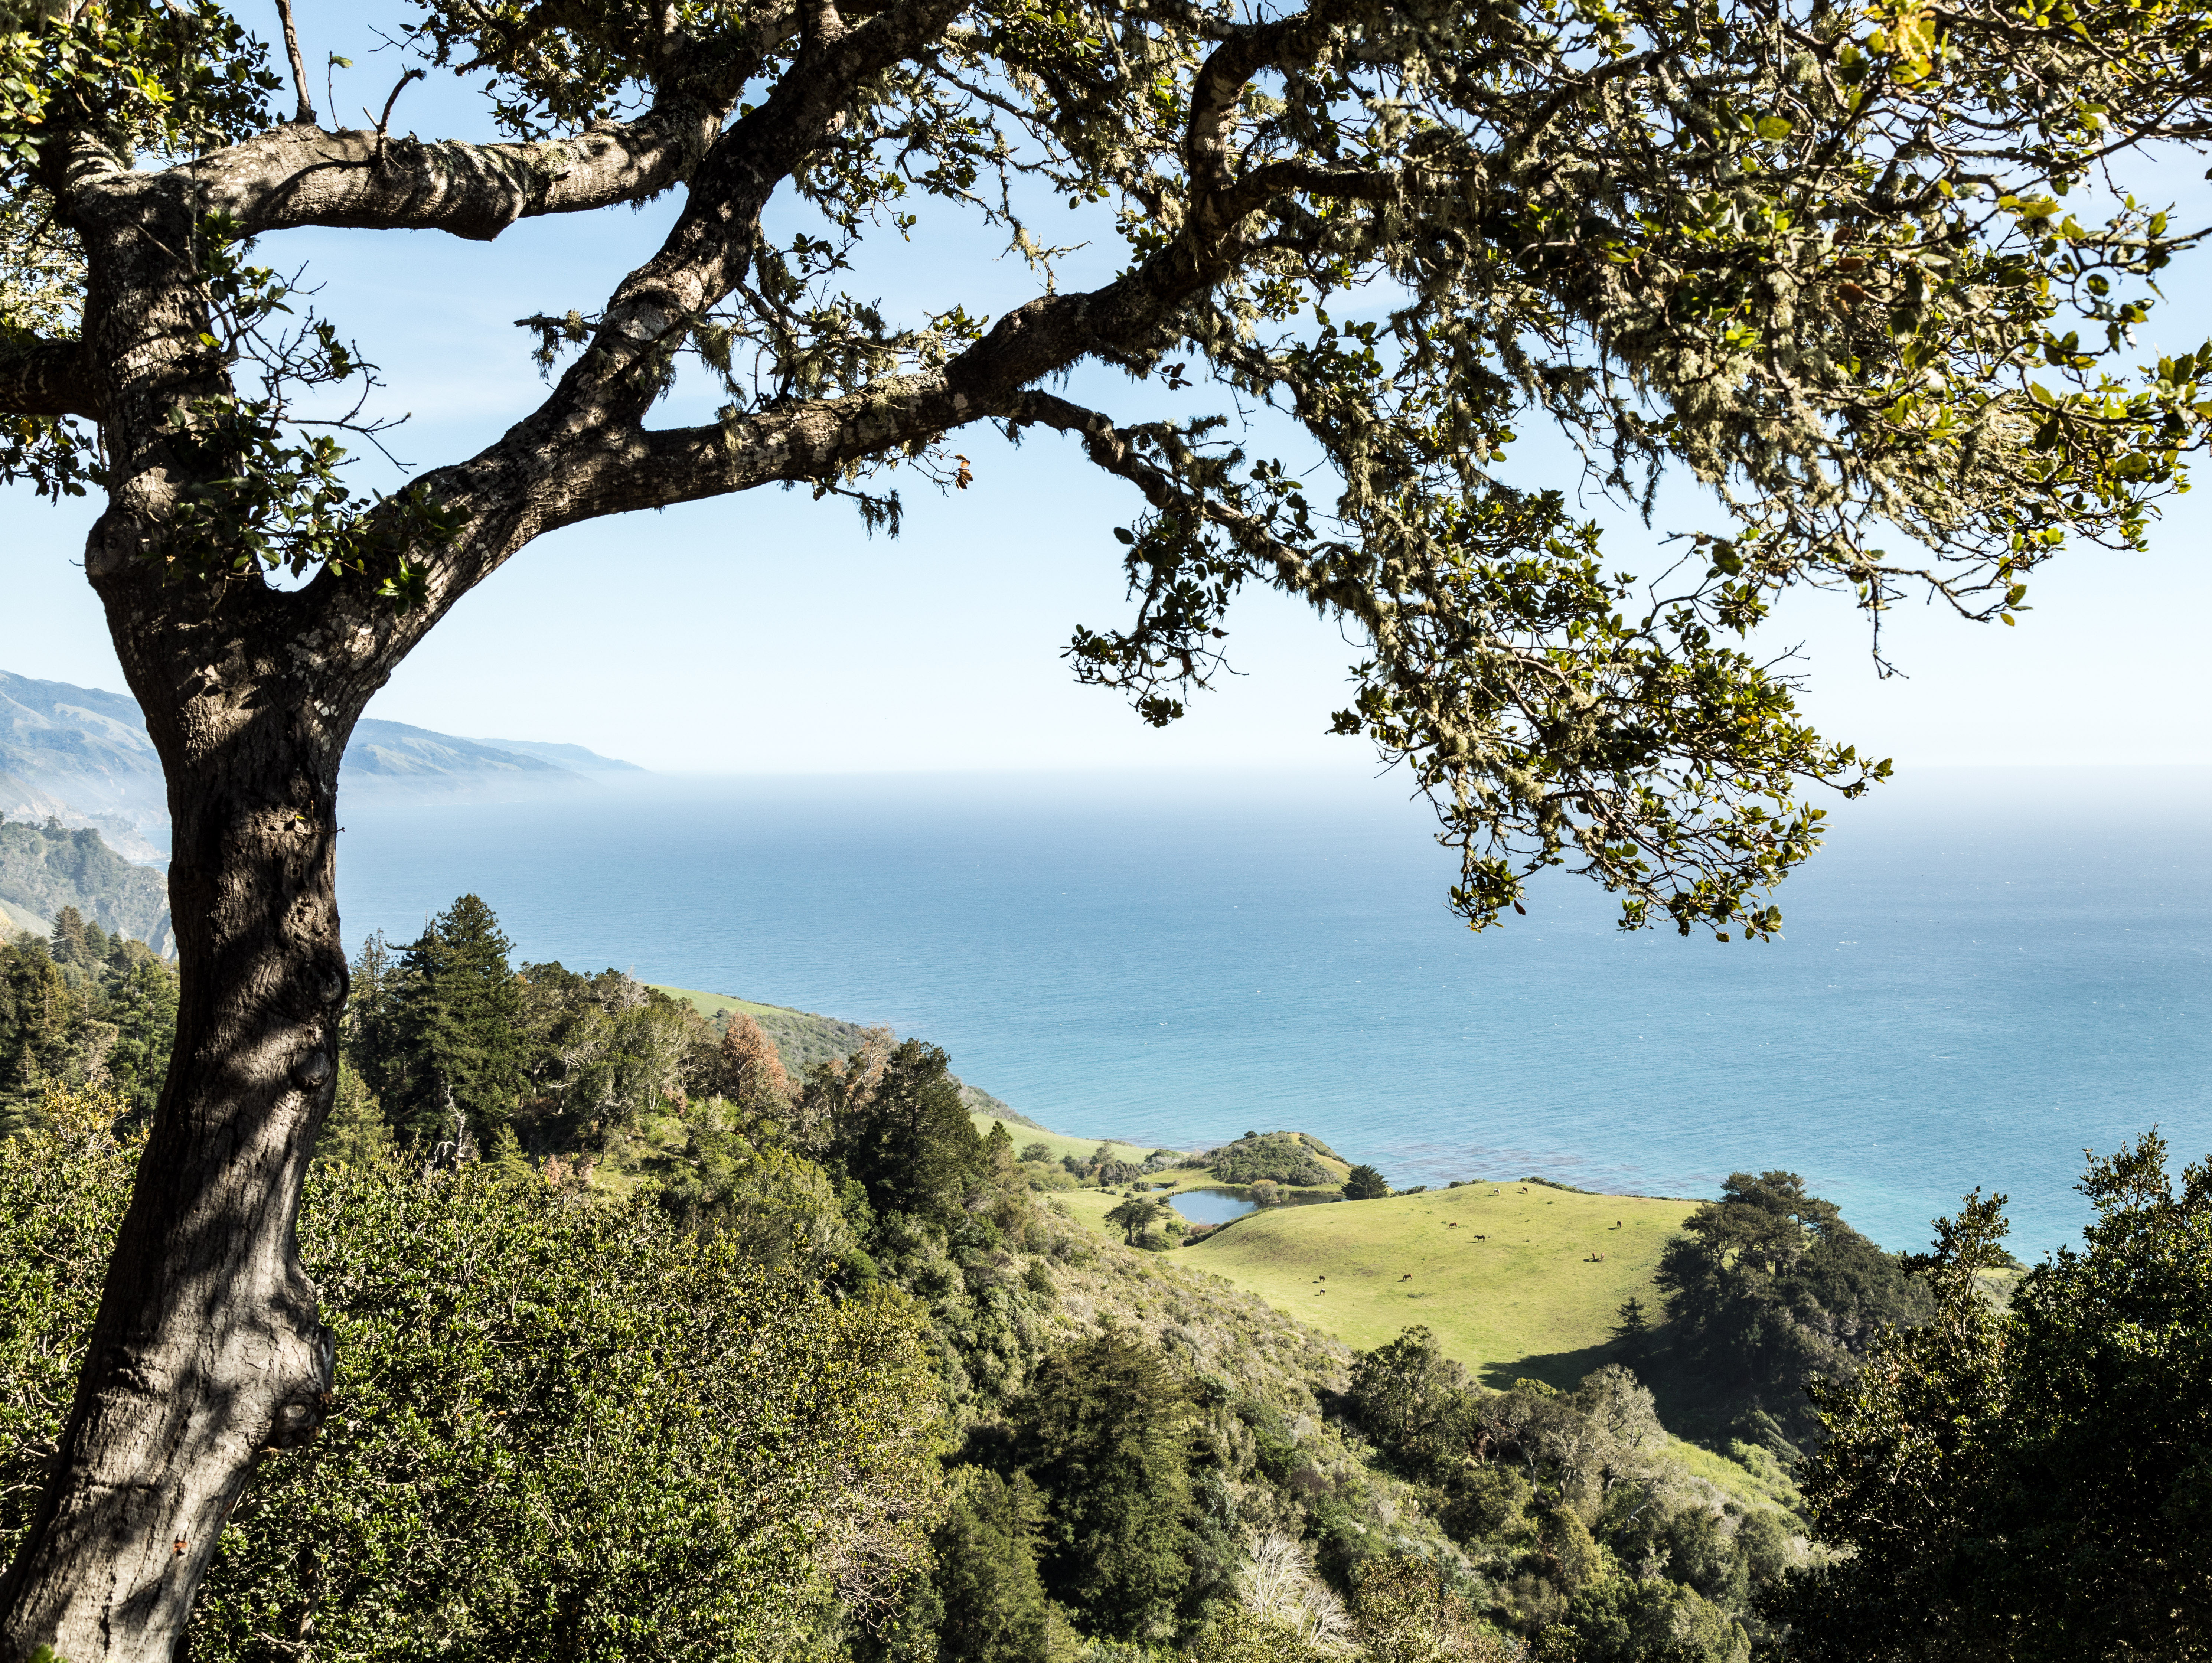 The view from Nepenthe, off Highway 1 in Big Sur